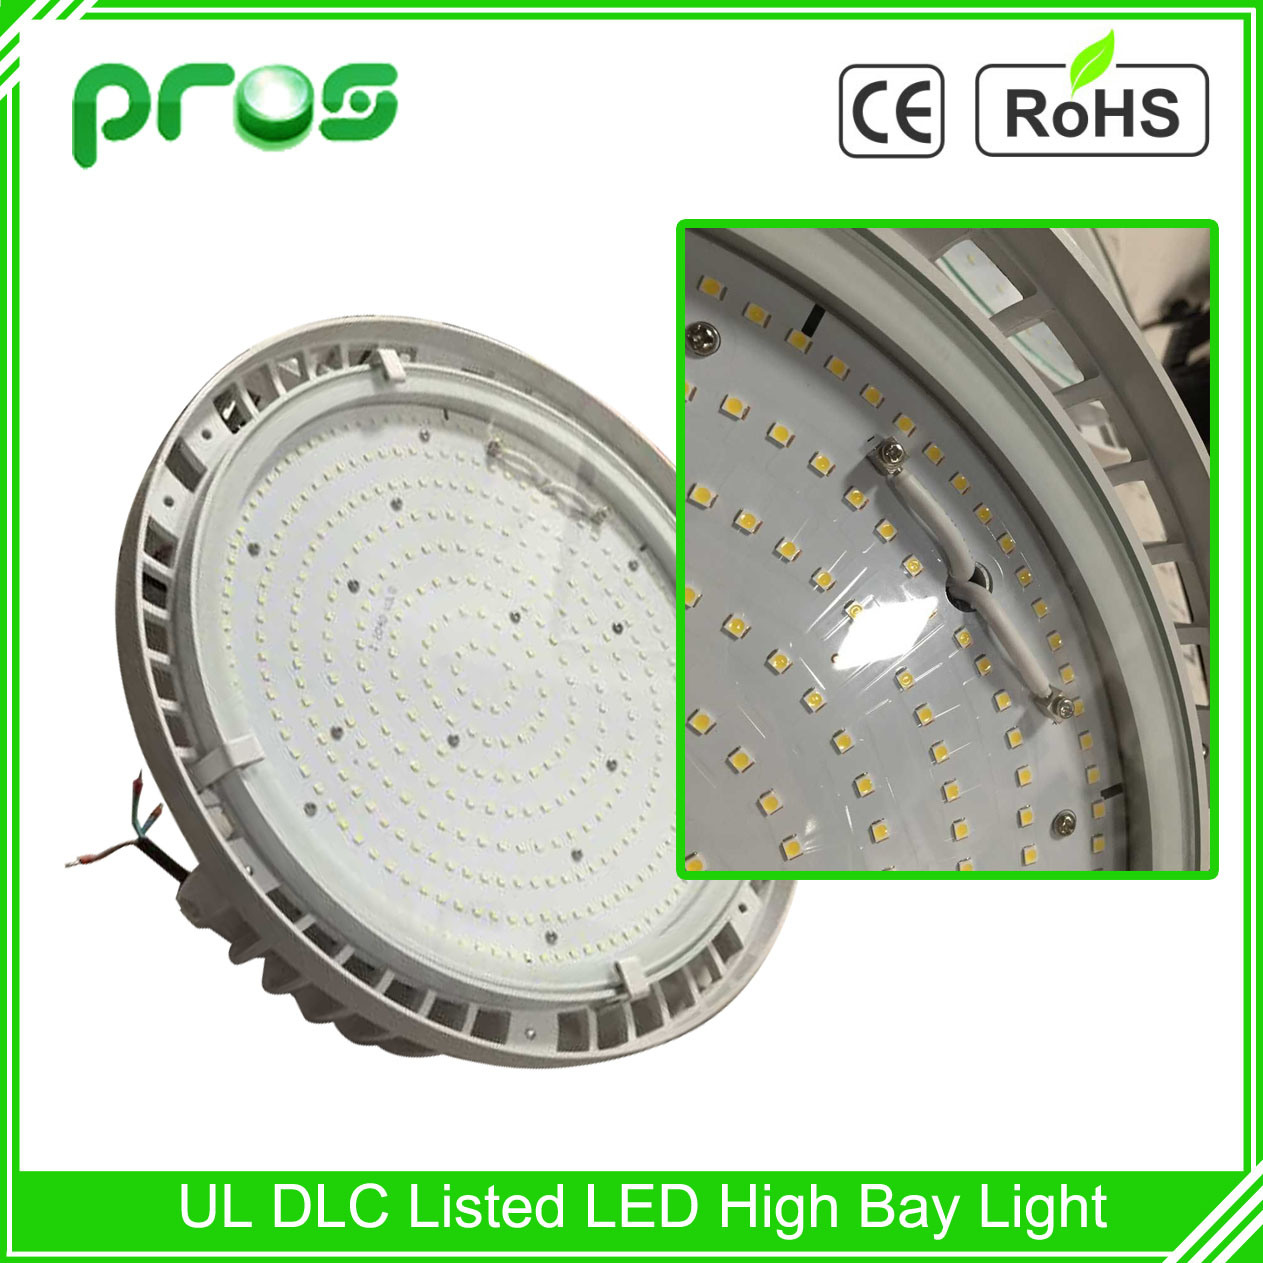 TUV LED High Bay Light 180W, Industrial Lighting with Meanwell Driver